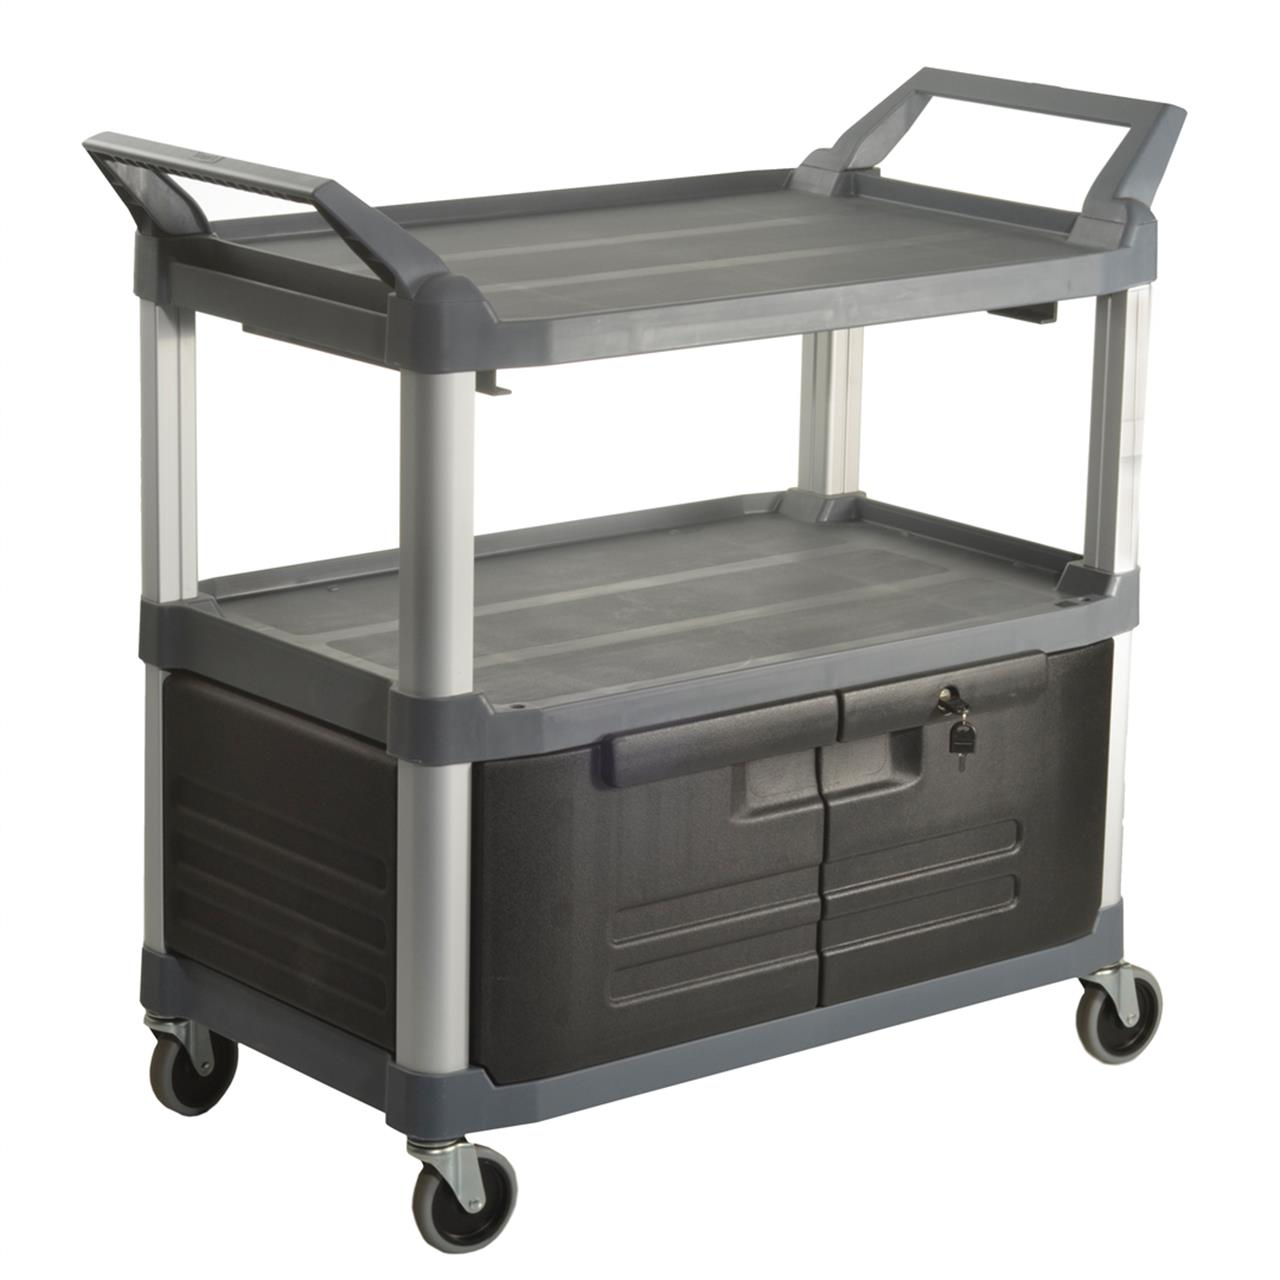 TRUST 3 Tier Utility Service Cart Lockable Doors